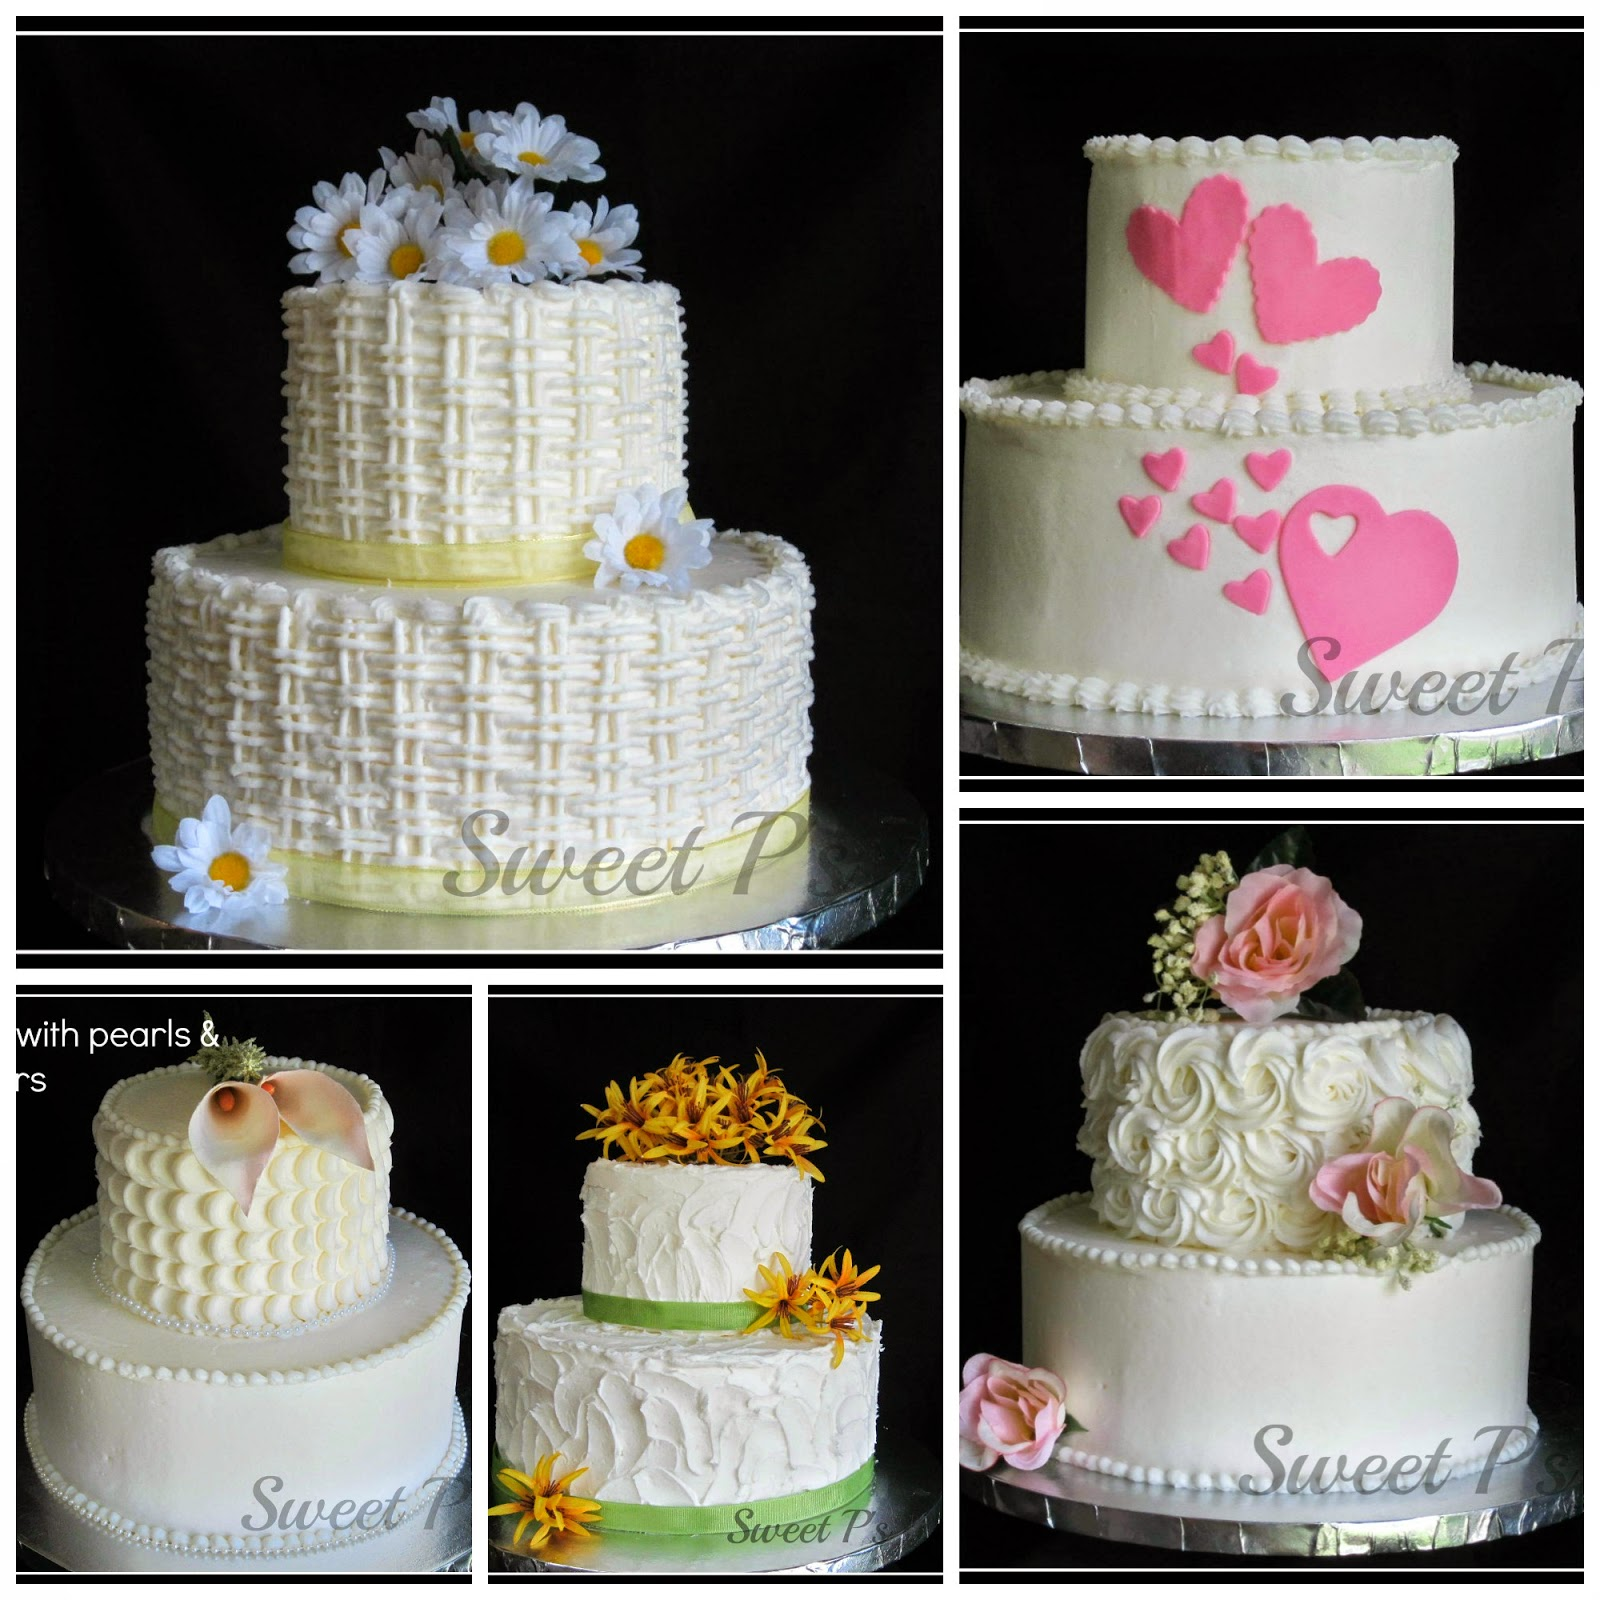 Wedding Ideas On A Tight Budget: Wedding Cake Options For Brides On A Tight Budget